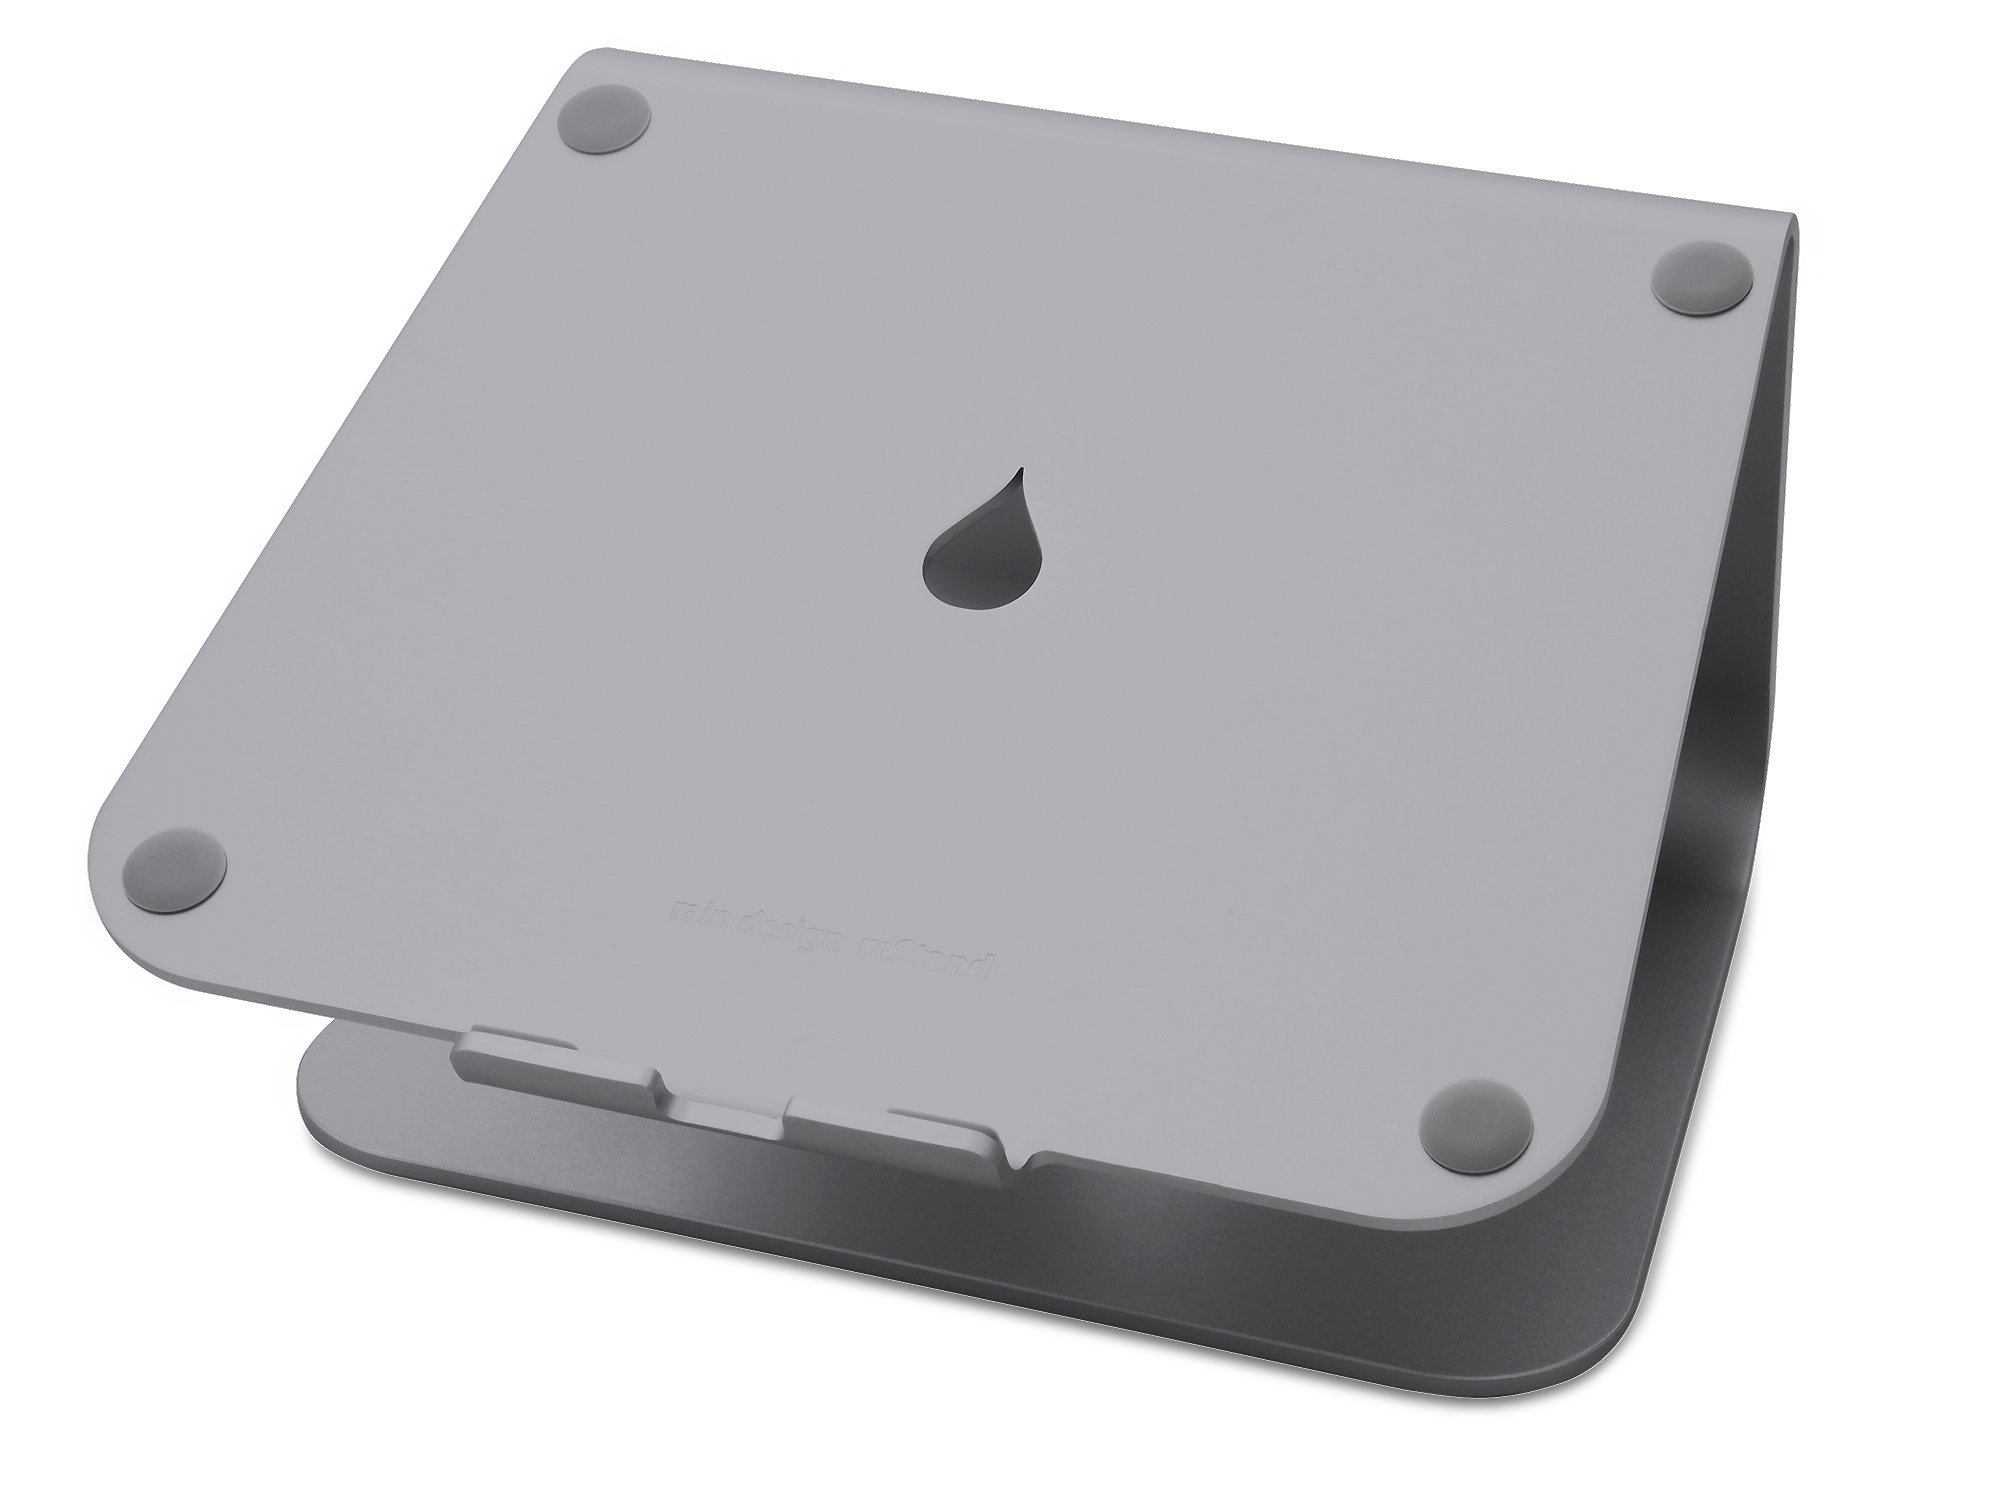 Rain Design mStand360 Laptop Stand with Swivel Base, Space Gray (Patented)